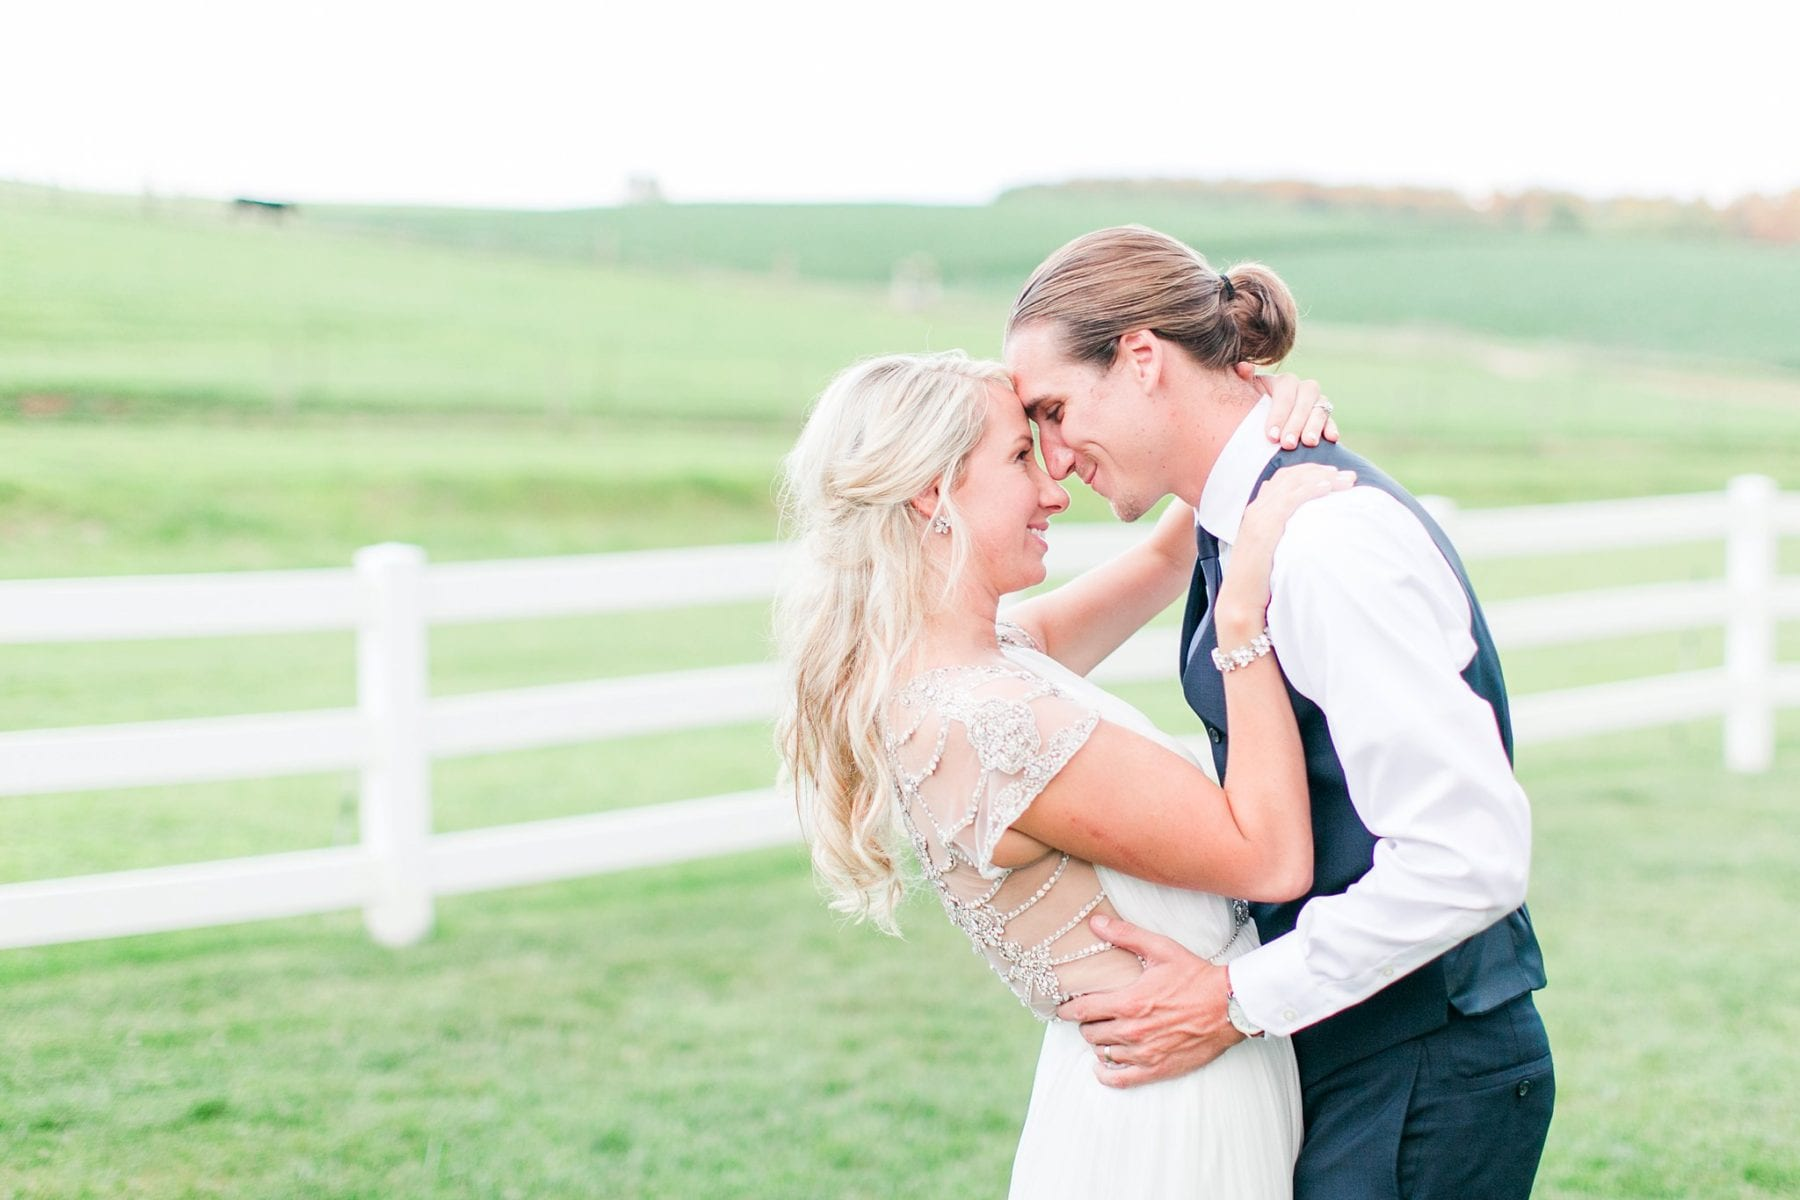 Pond View Farm Wedding Photos Maryland Wedding Photographer Kristen & Ryan Megan Kelsey Photography Blog-266.jpg